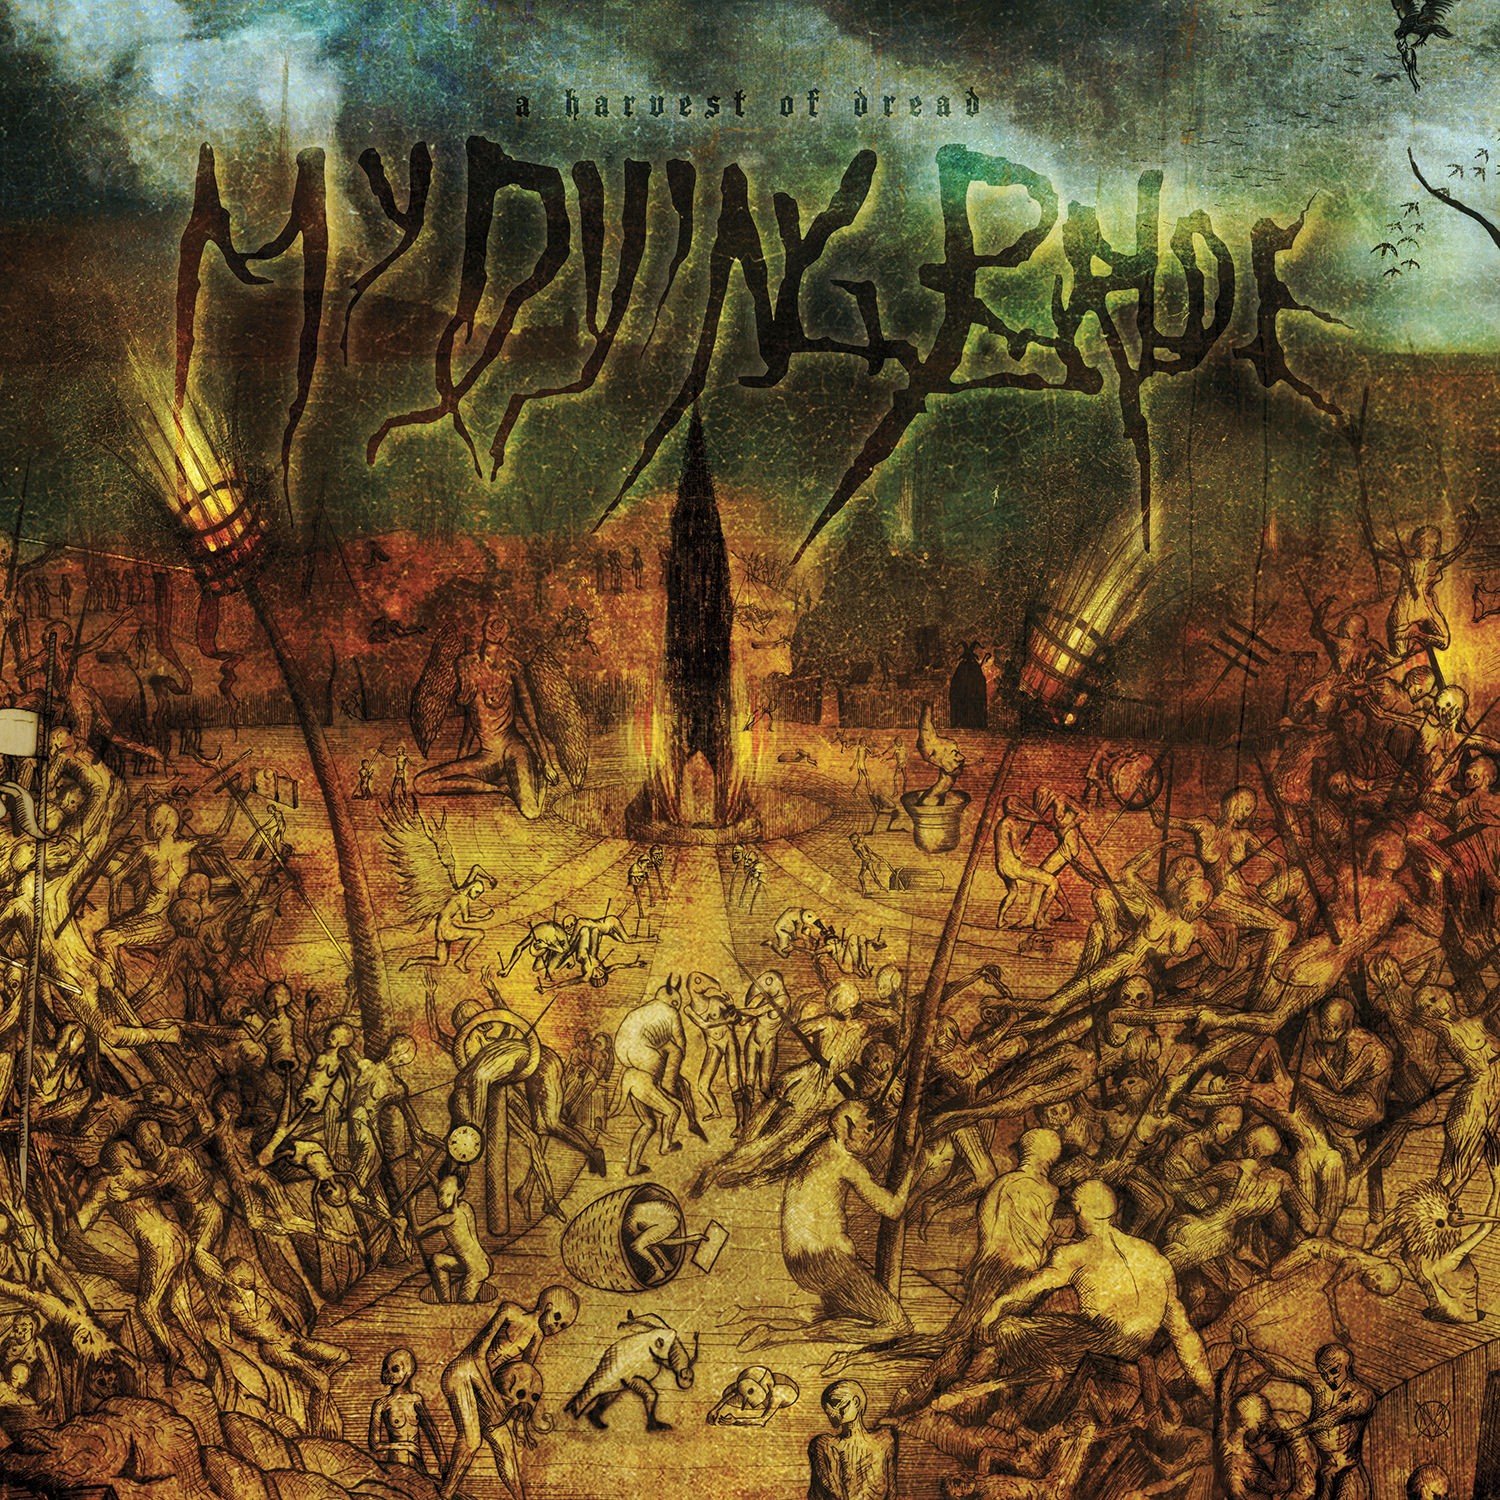 My Dying Bride announce 25 year anniversary and new release 'A Harvest of Dread'